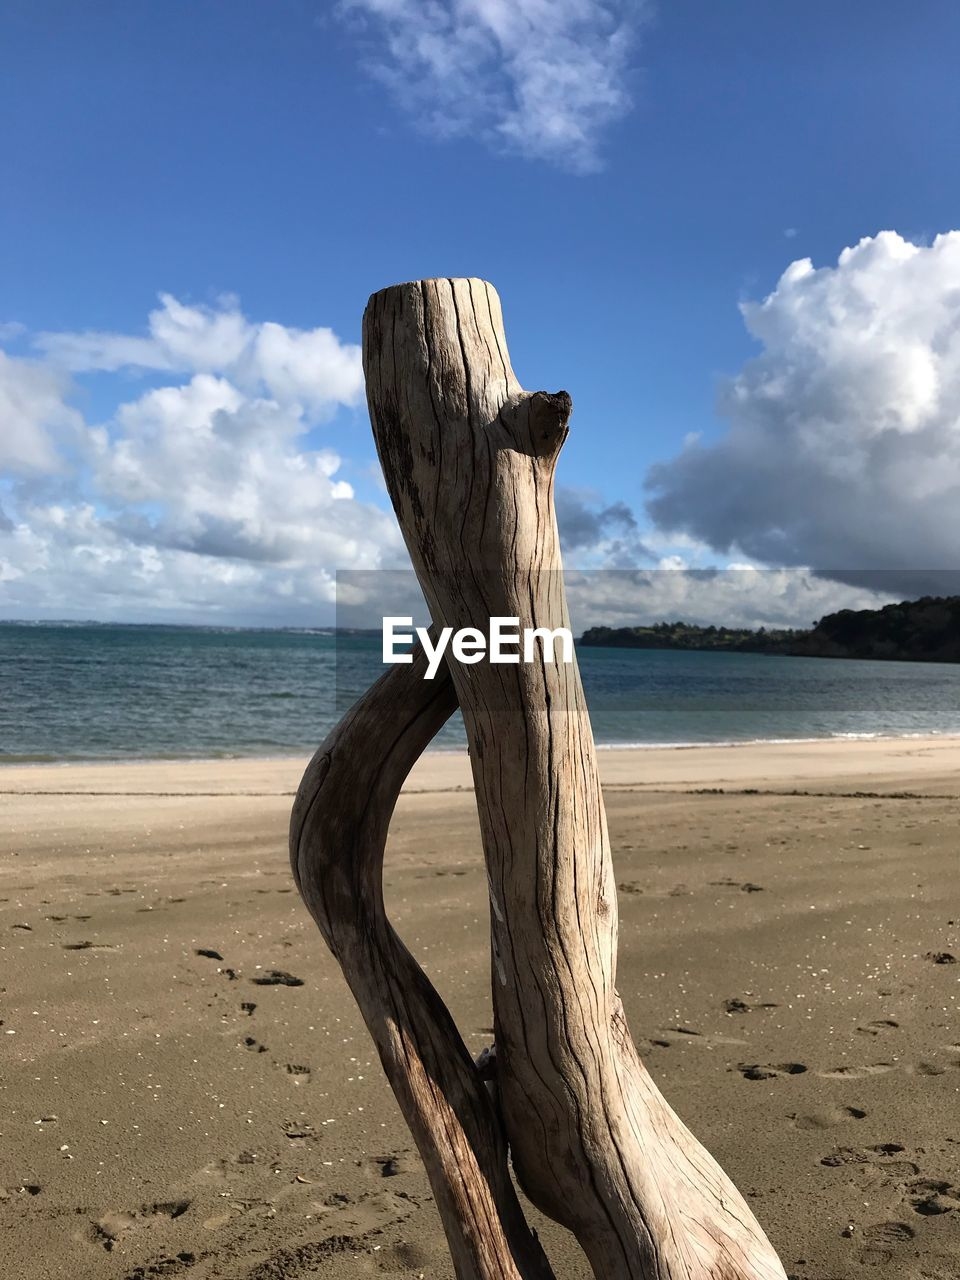 DRIFTWOOD ON WOODEN POSTS ON BEACH